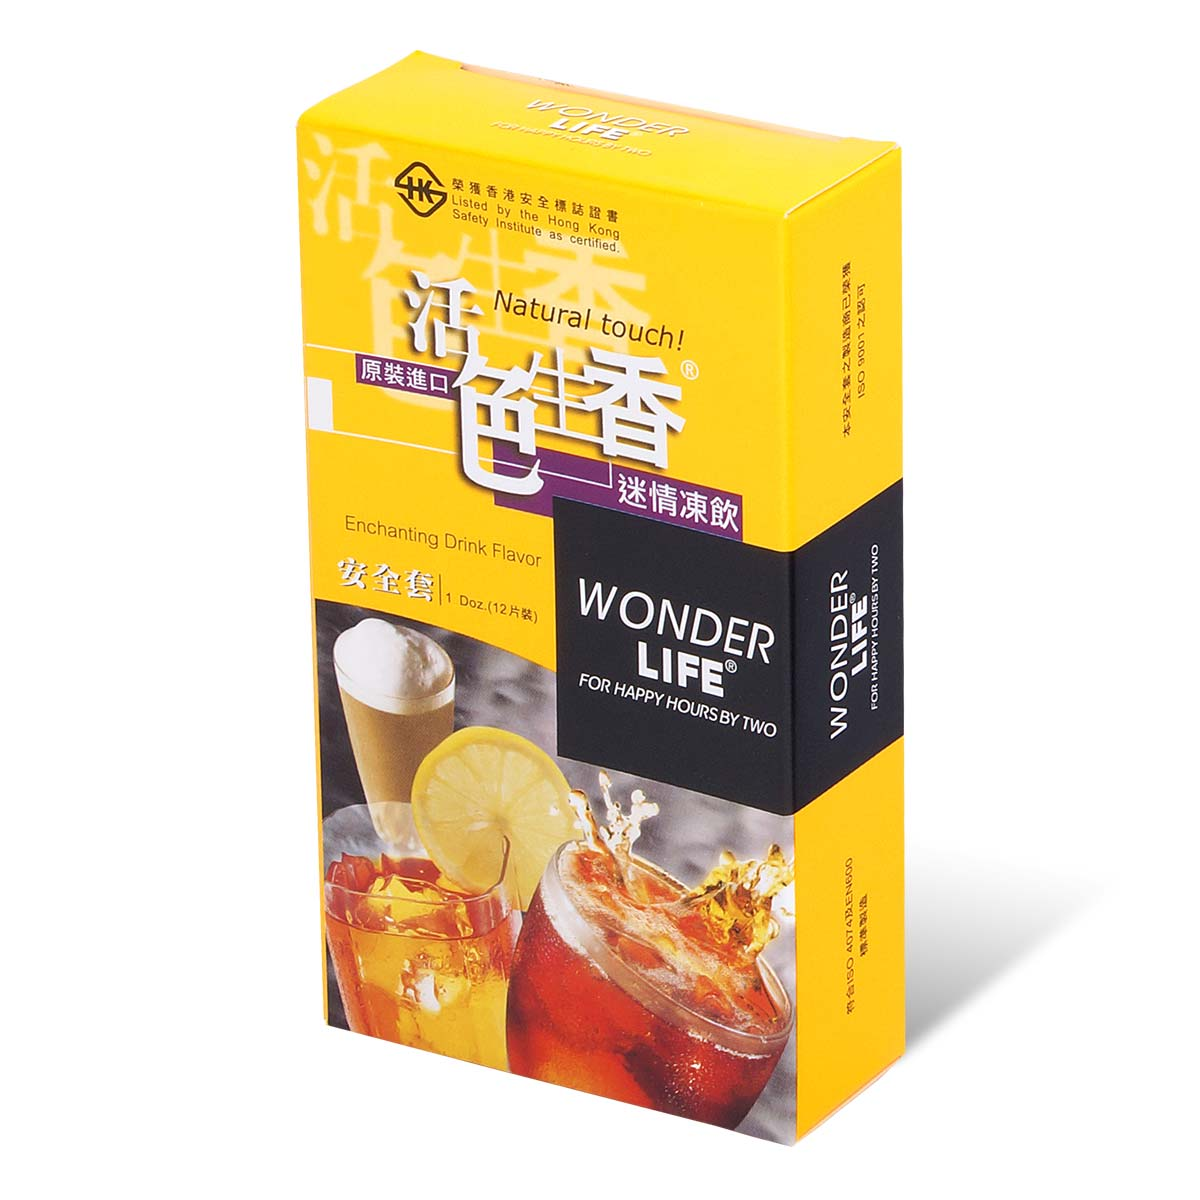 Wonder Life Enchanting Drink Flavor 12's Pack Latex Condom